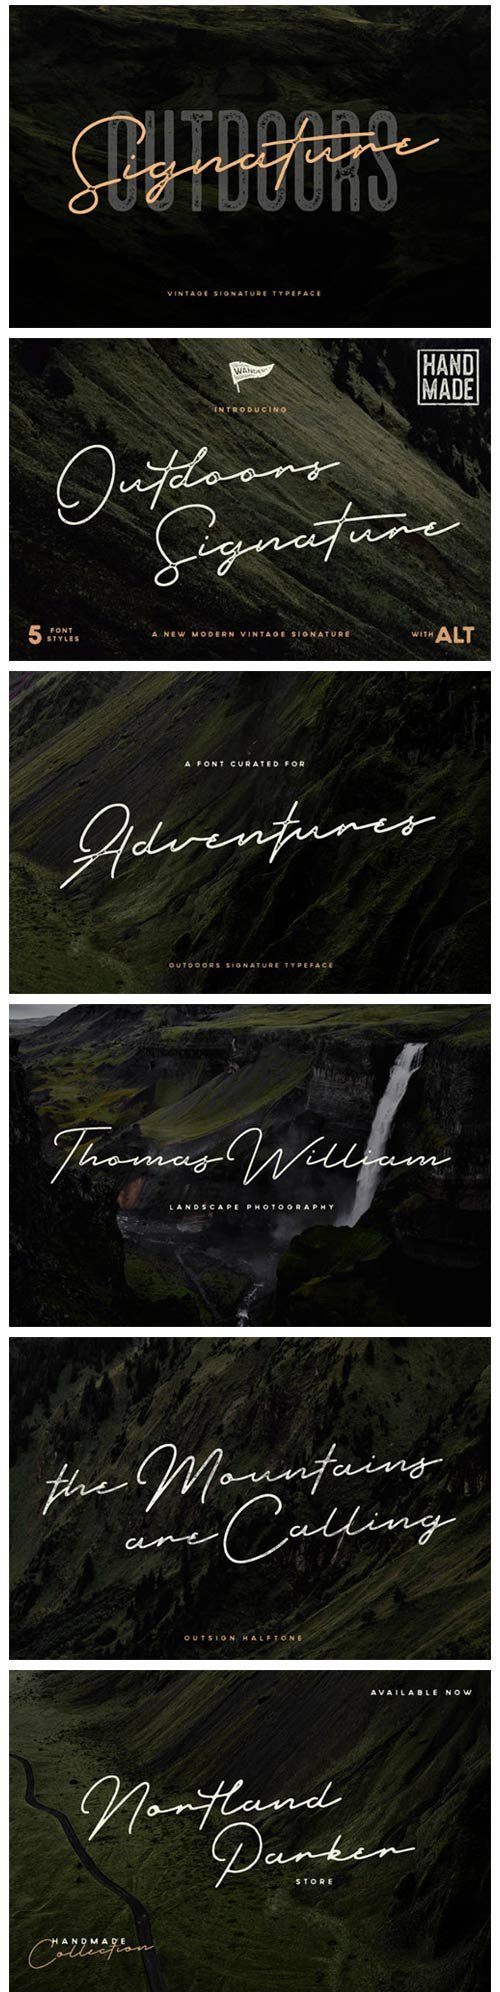 Outdoors Signature Font